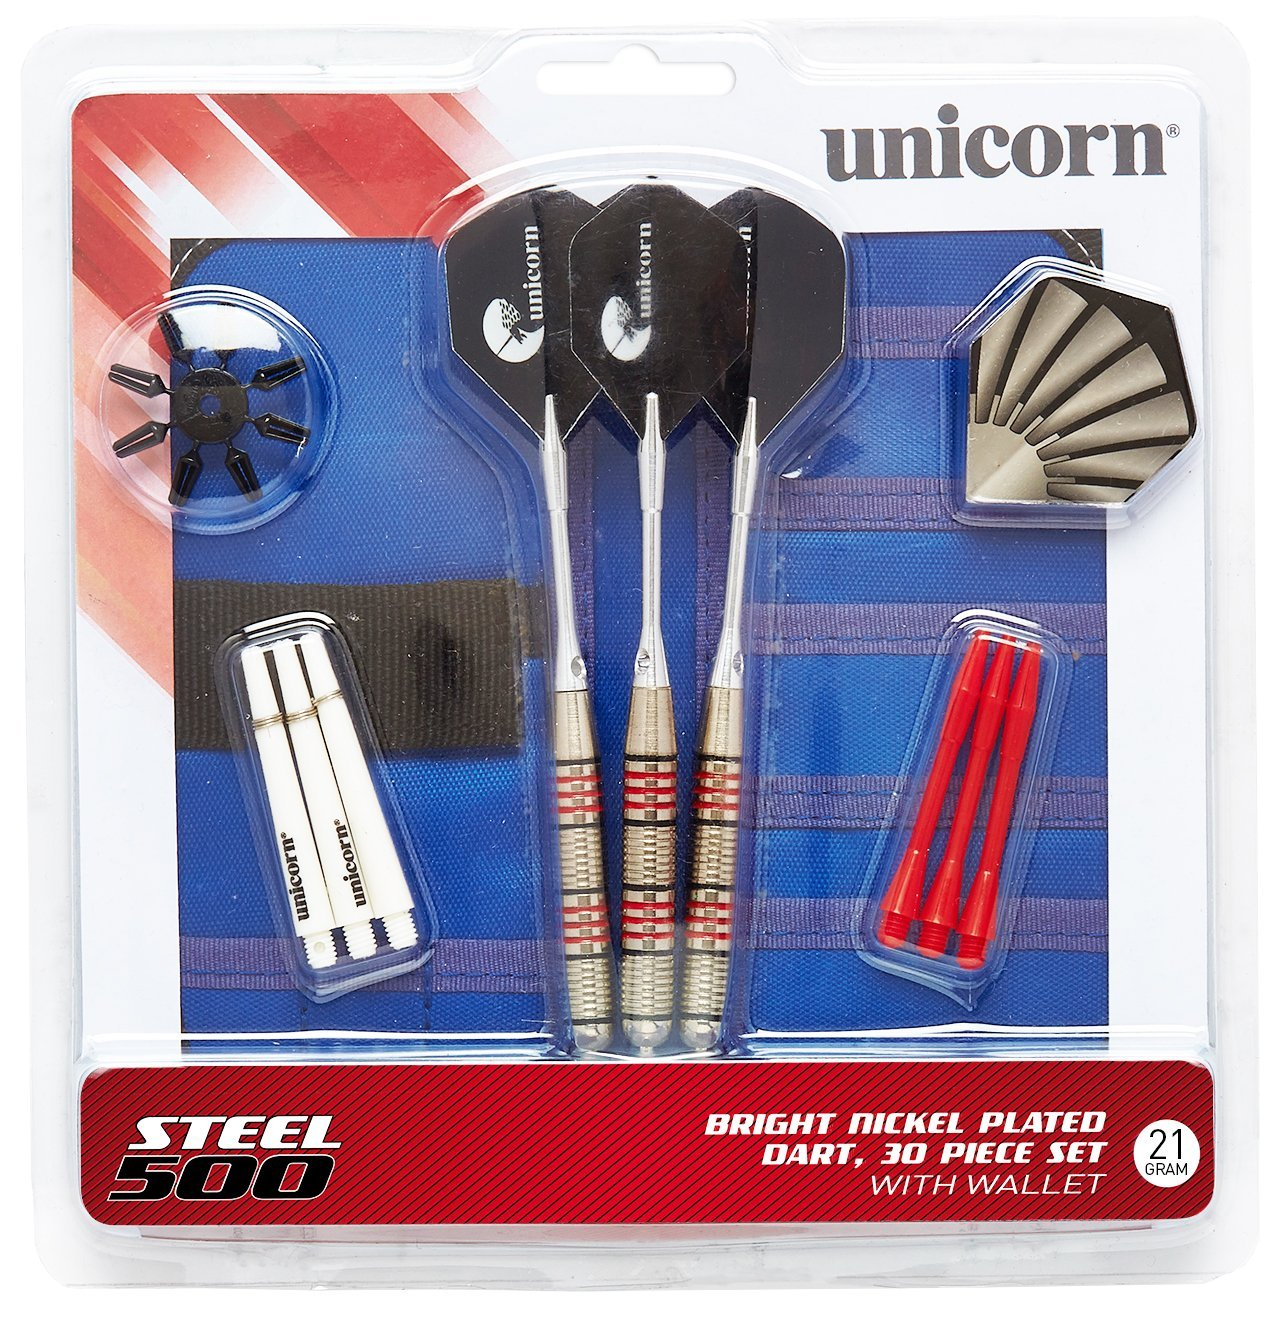 Unicorn Steel 500 30-Piece Dart Set Includes Wallet Carrying Case Designed for Use with Bristle Dartboards